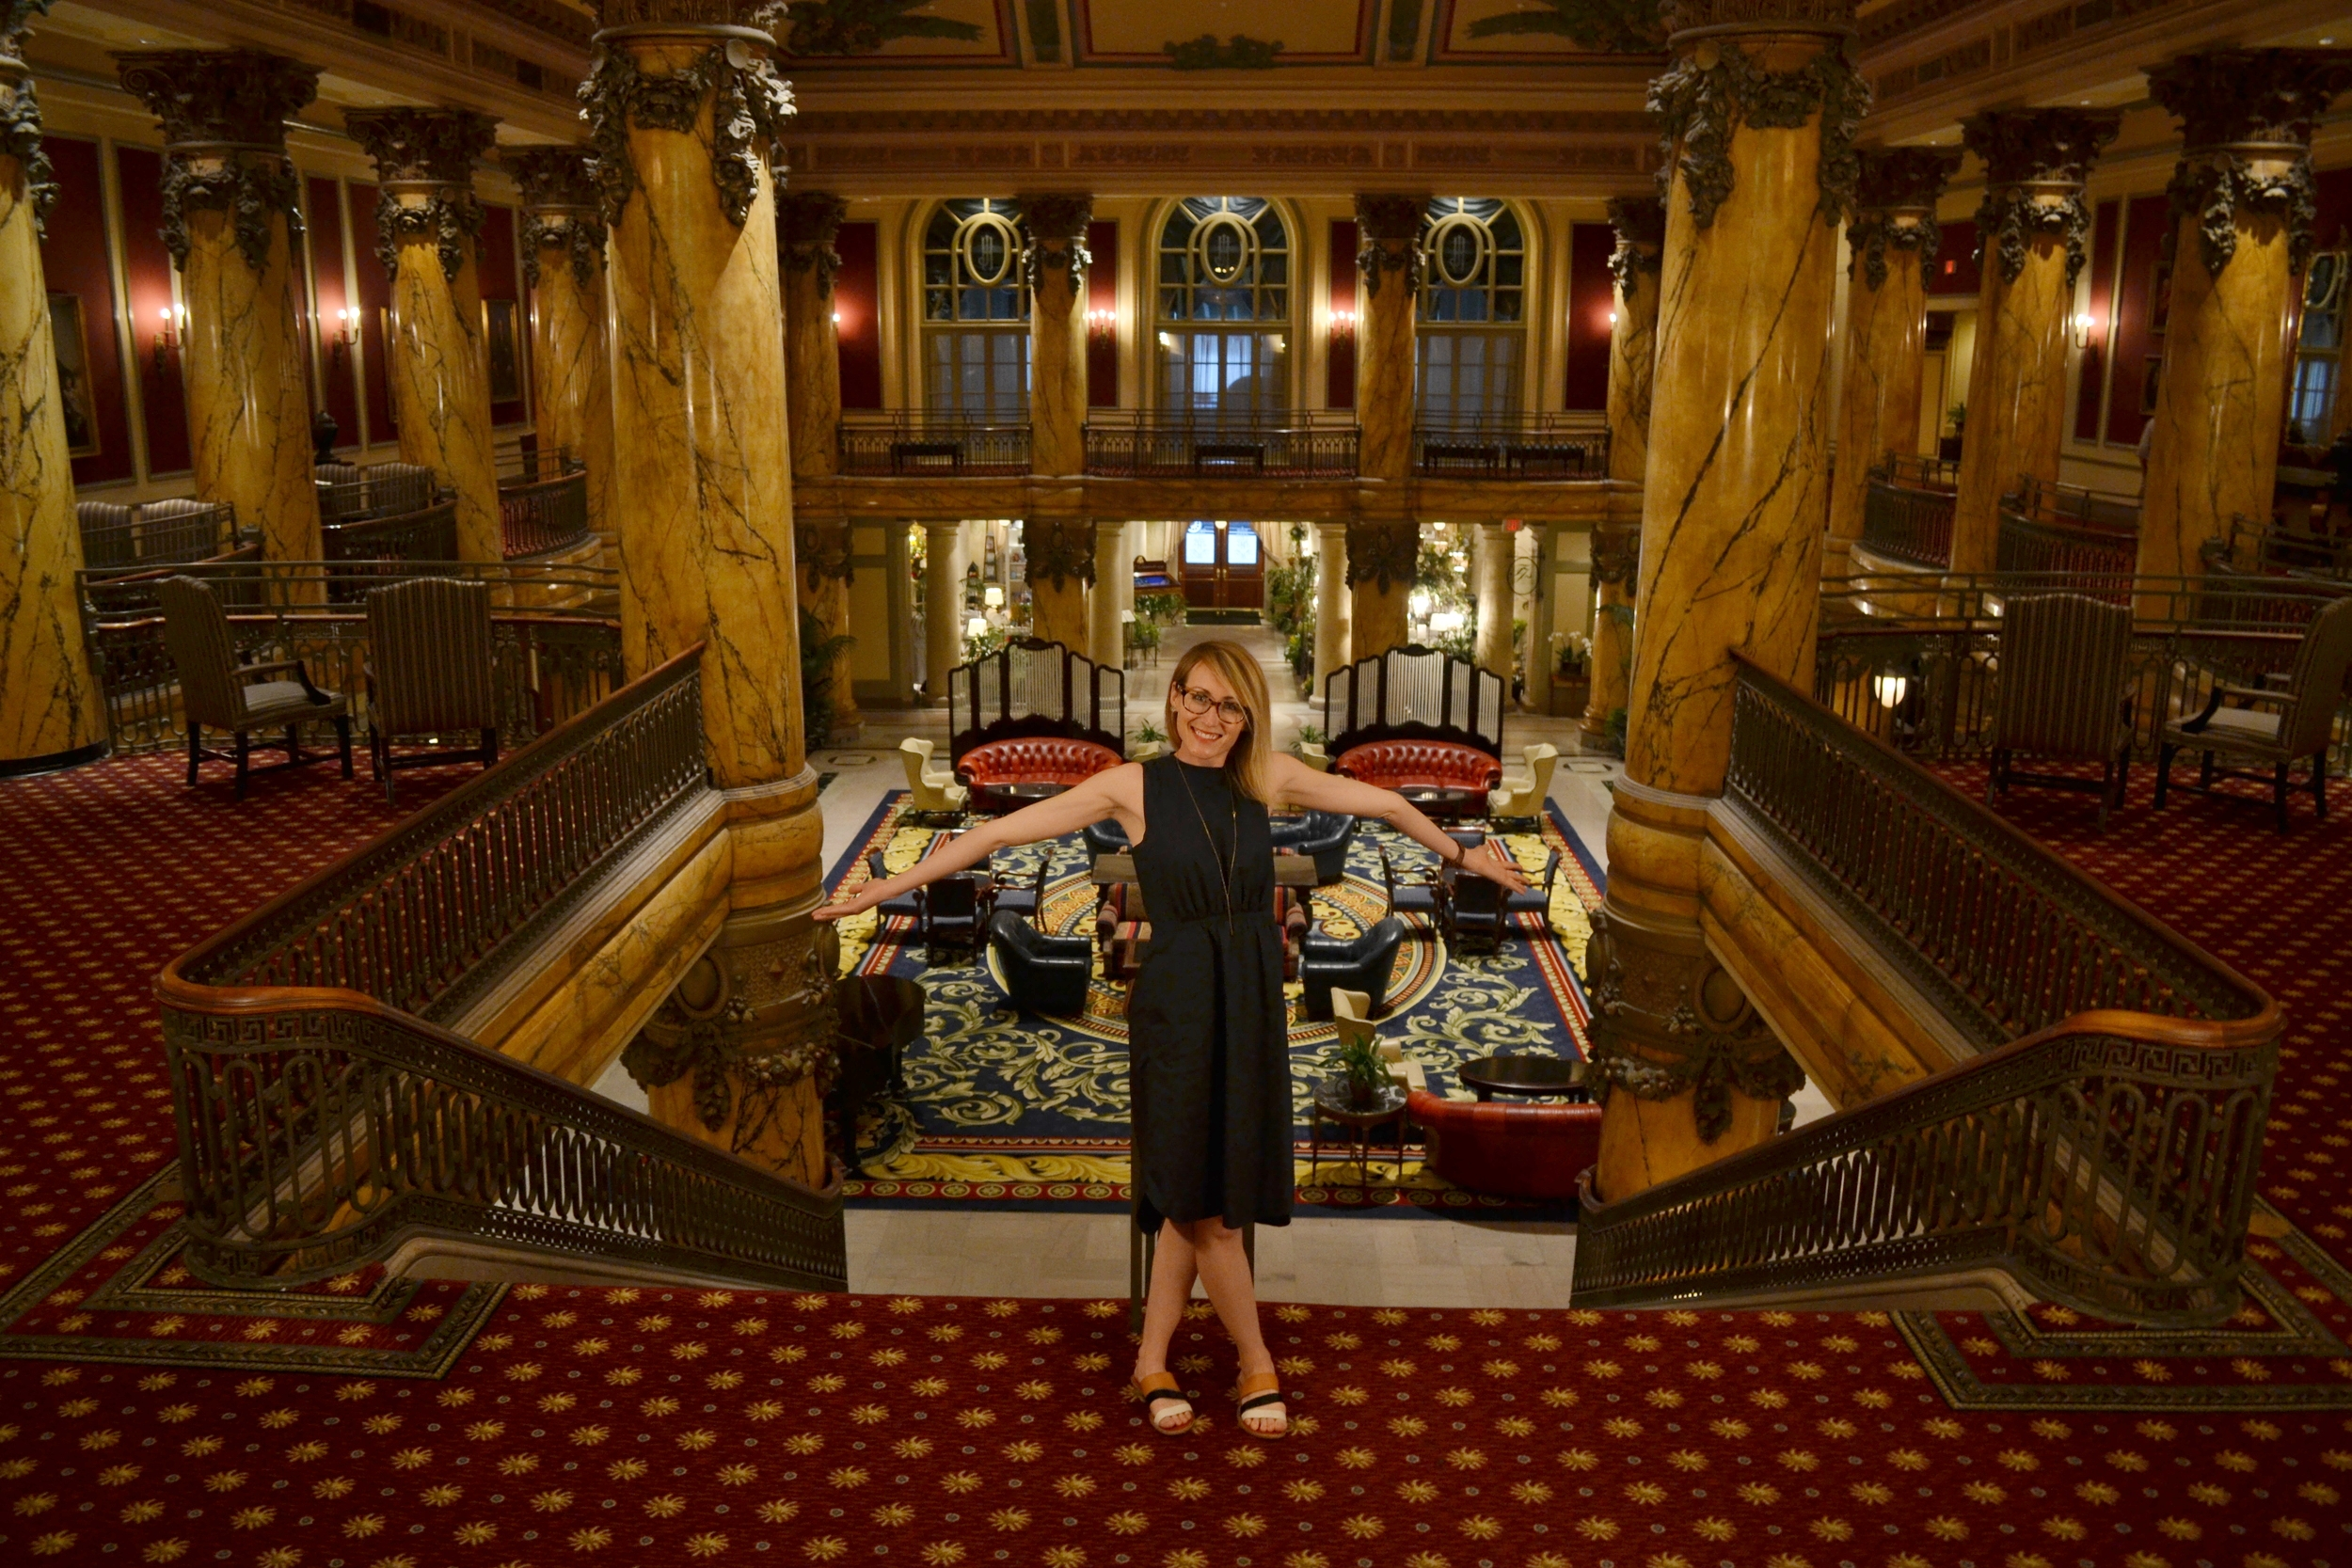 Mel is happy to show off the grand staircase at The Jefferson.